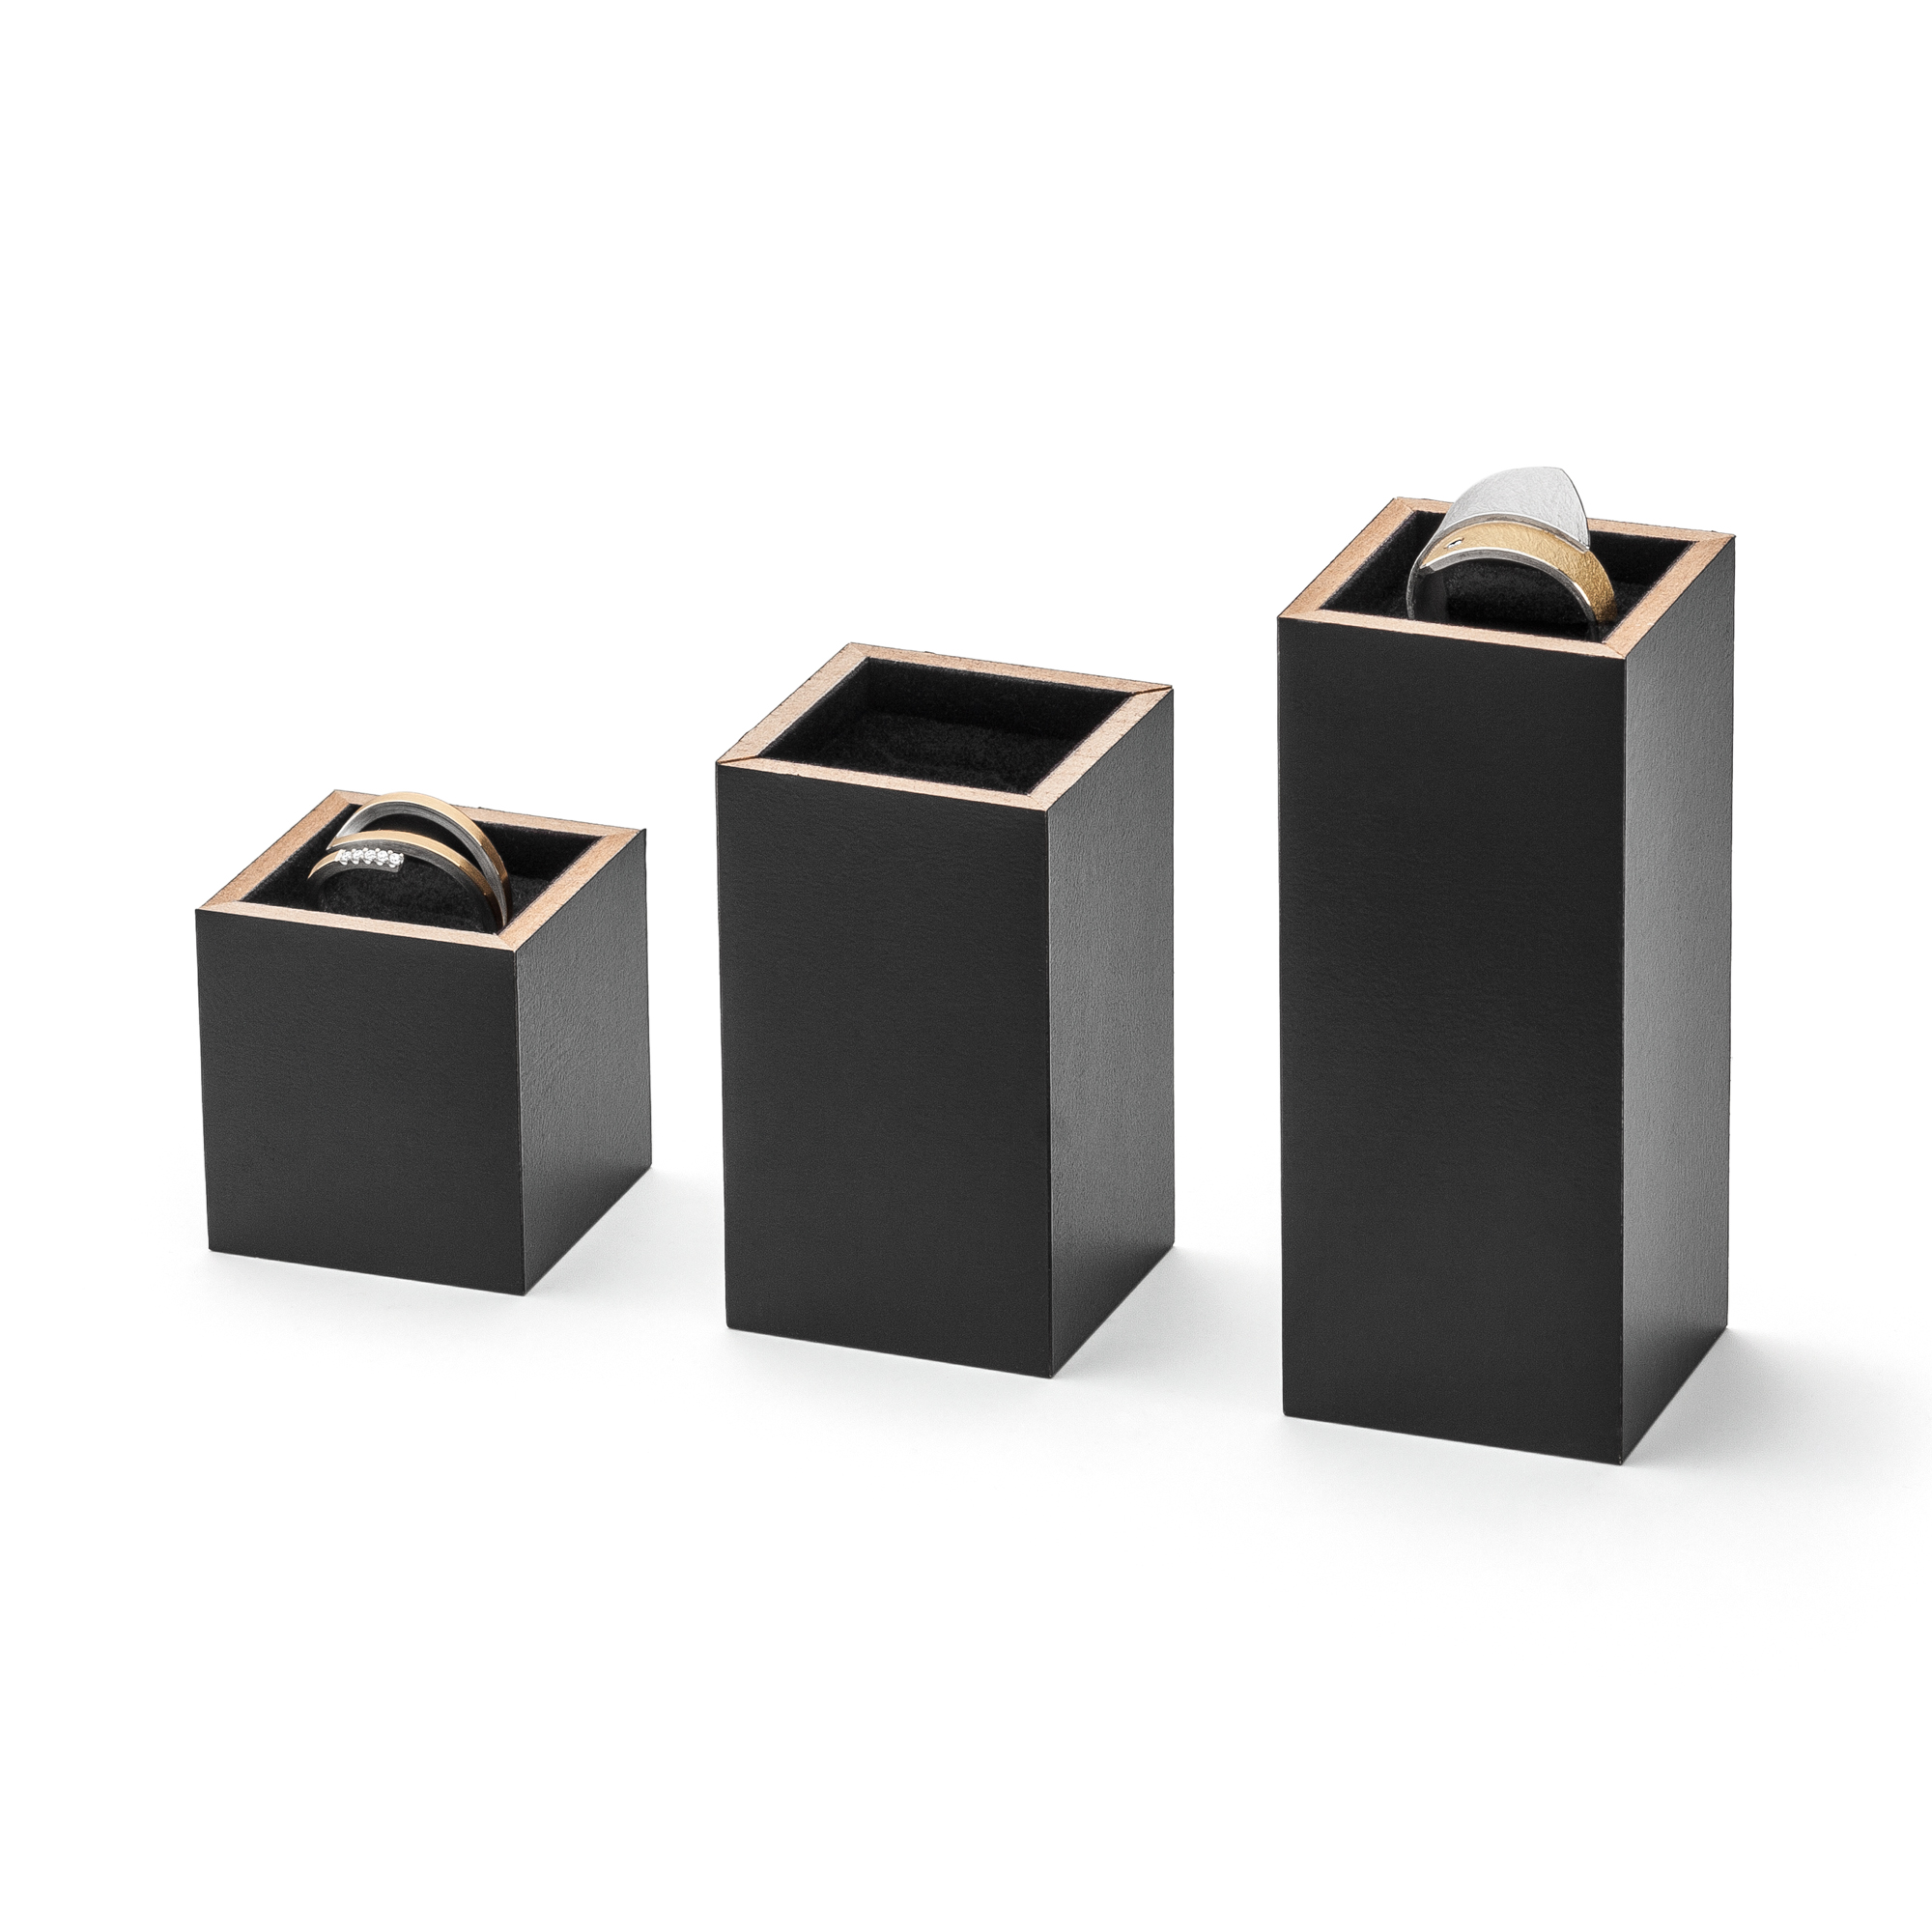 BLACKCUBE Ring stands